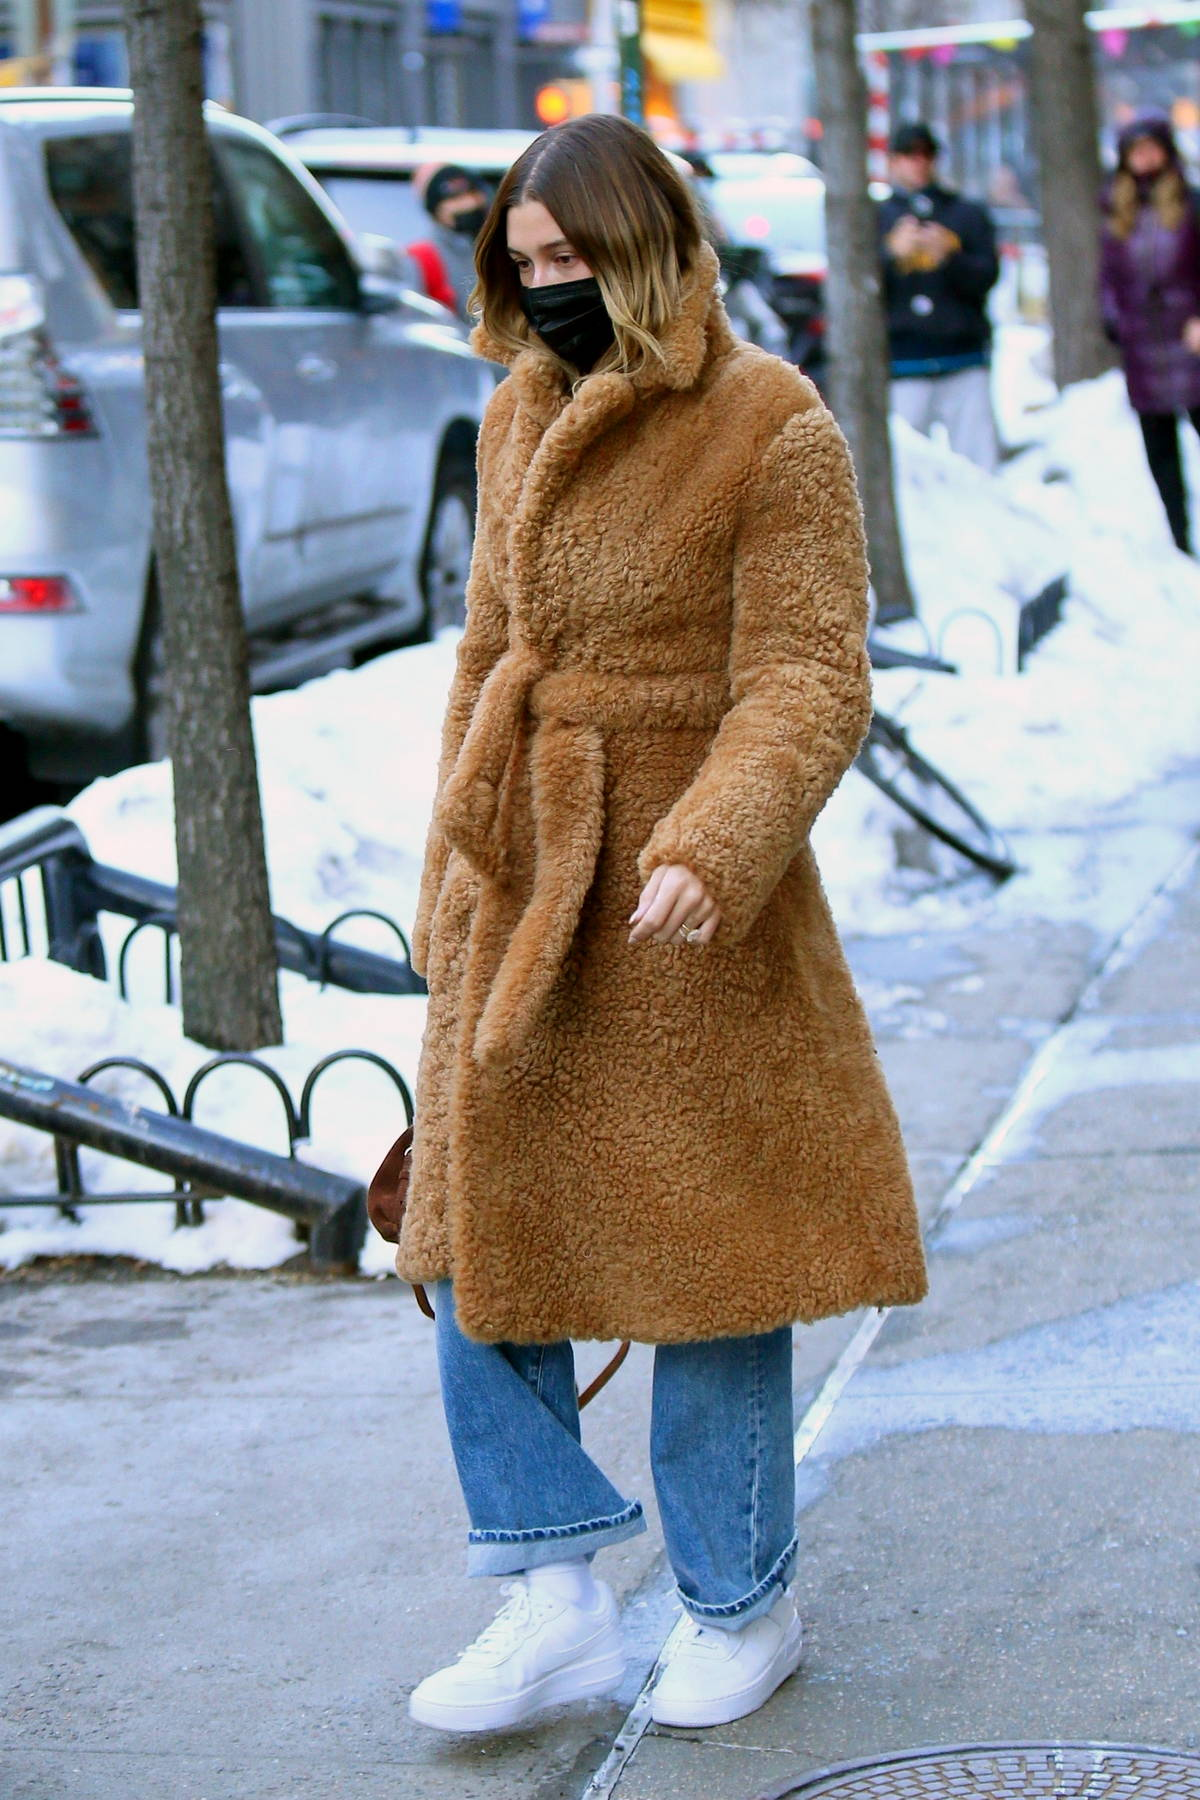 Hailey Bieber keeps warm in a brown faux fur coat while out in New York City